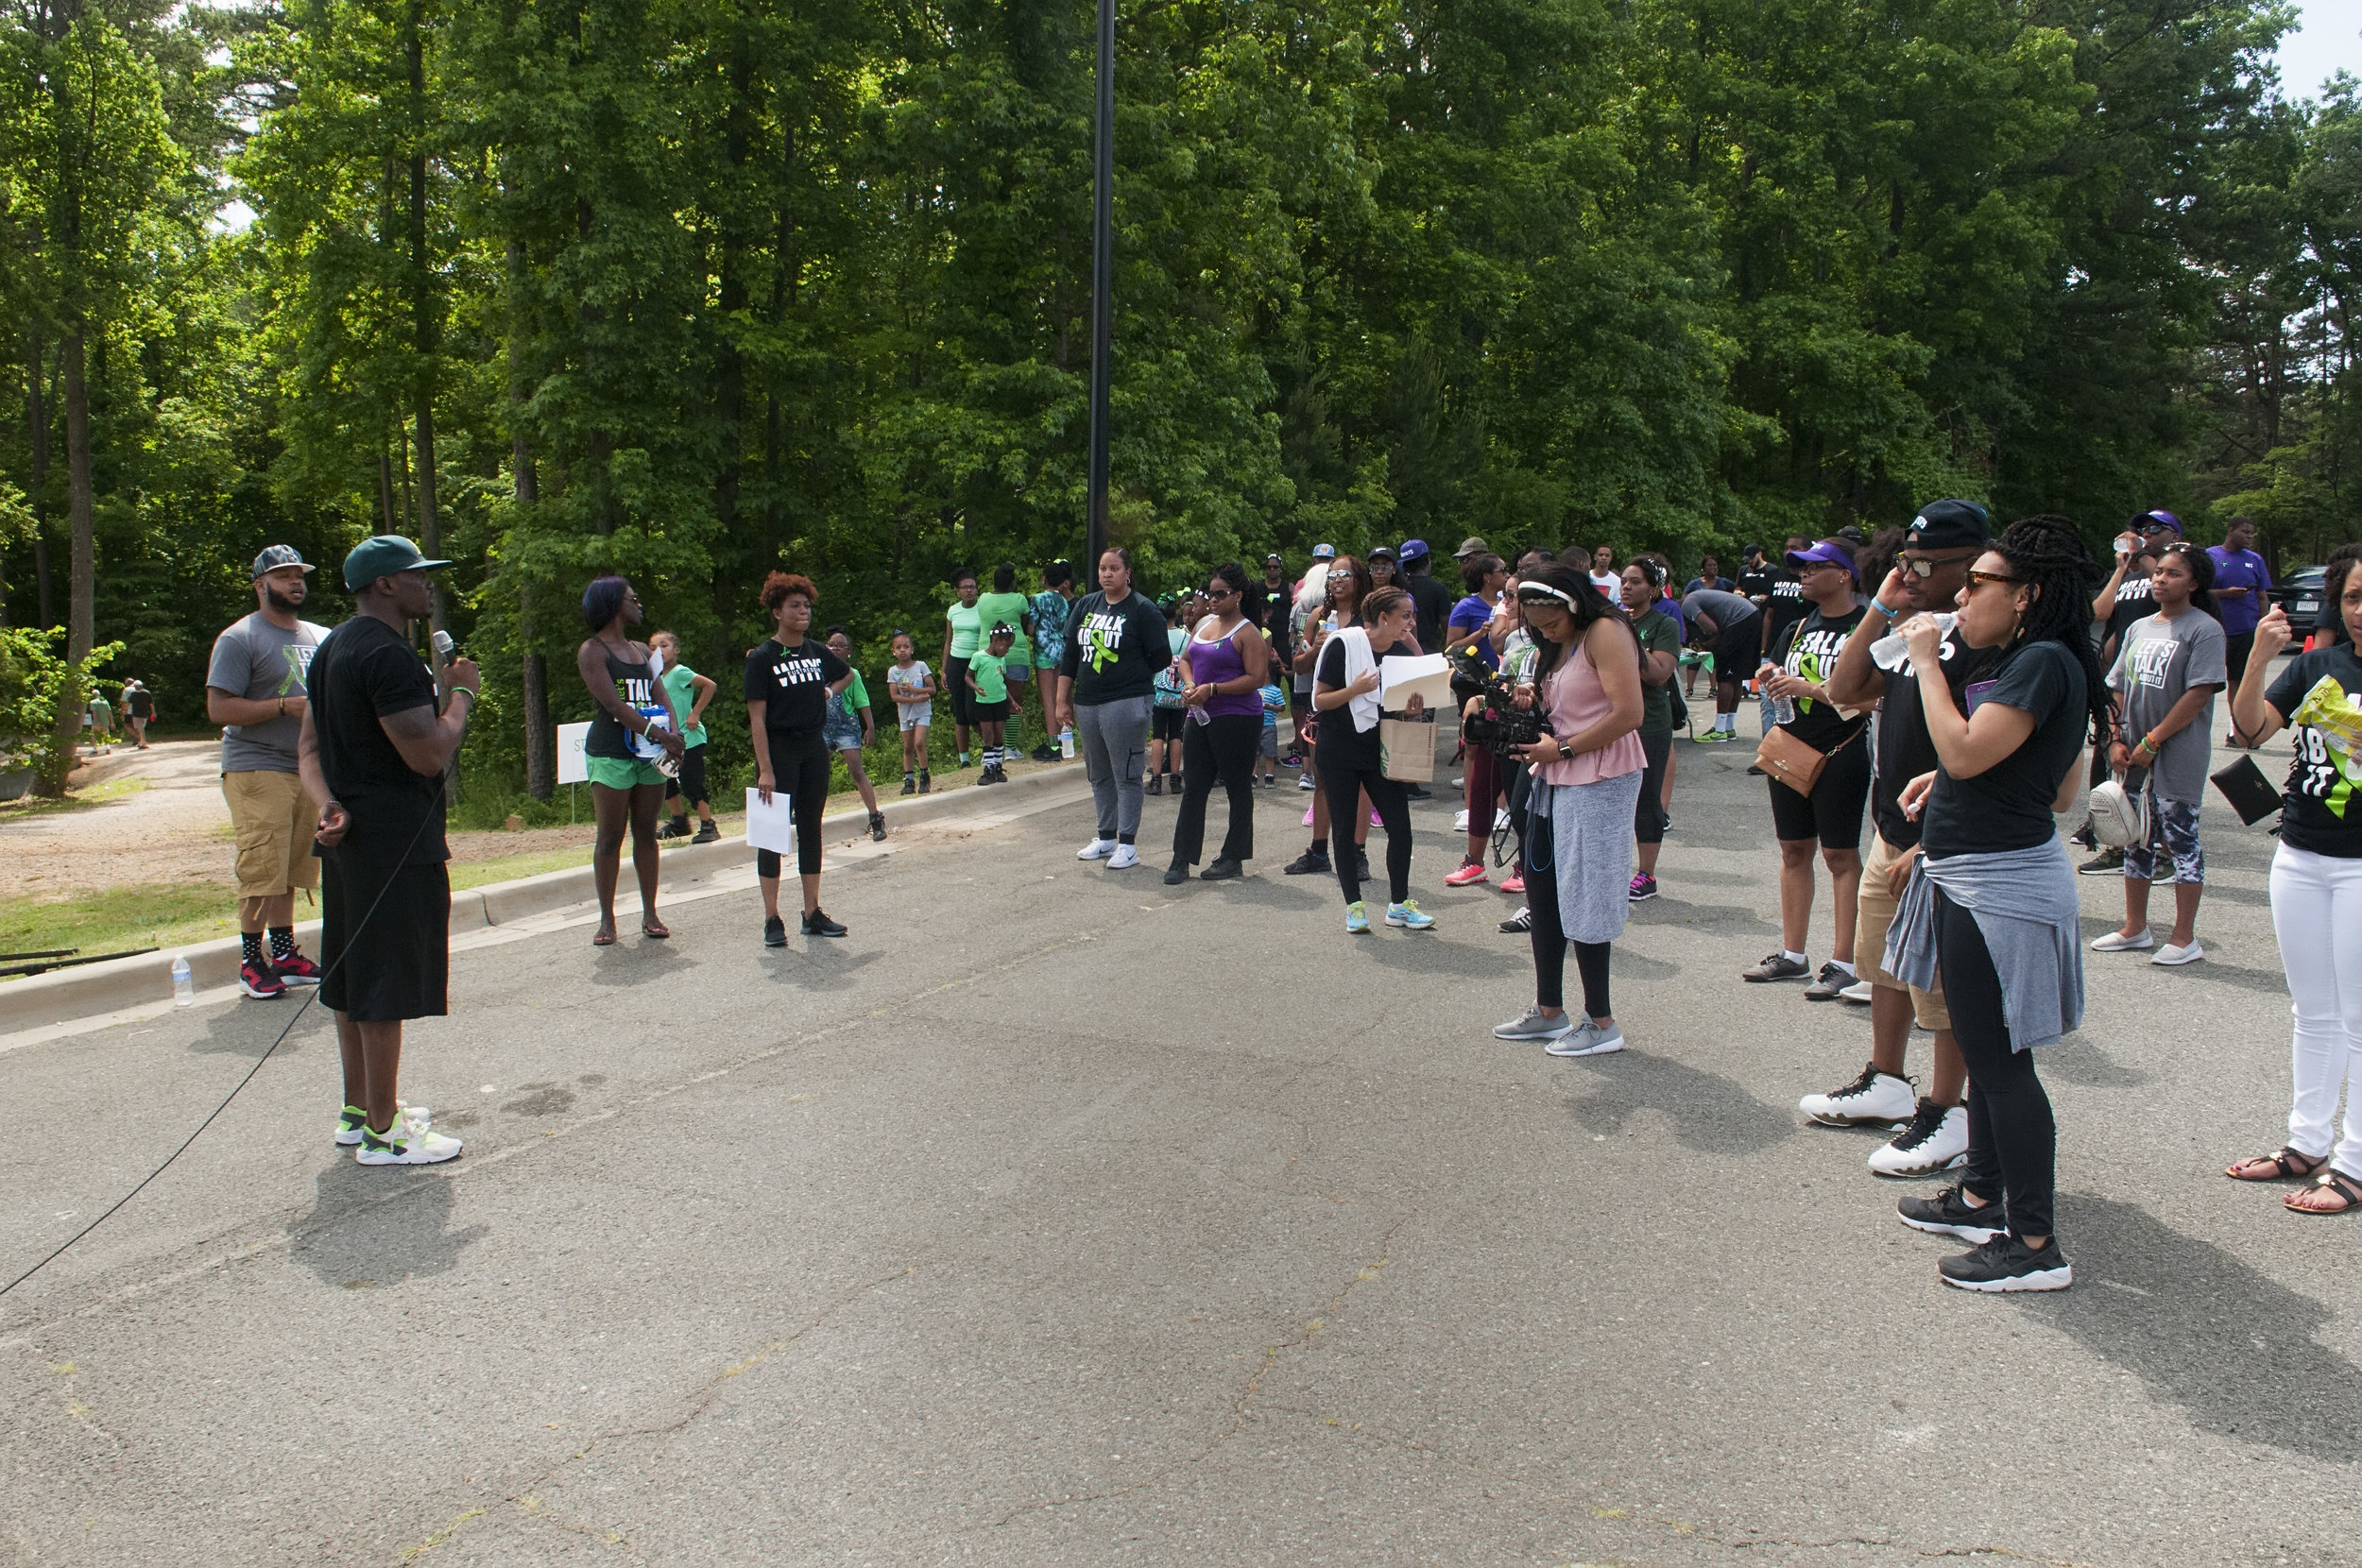 2nd Annual Let's Talk About It Mental Health Awareness Walk @ Park Rd Park 5-20-17 by Jon Strayhorn 144.jpg